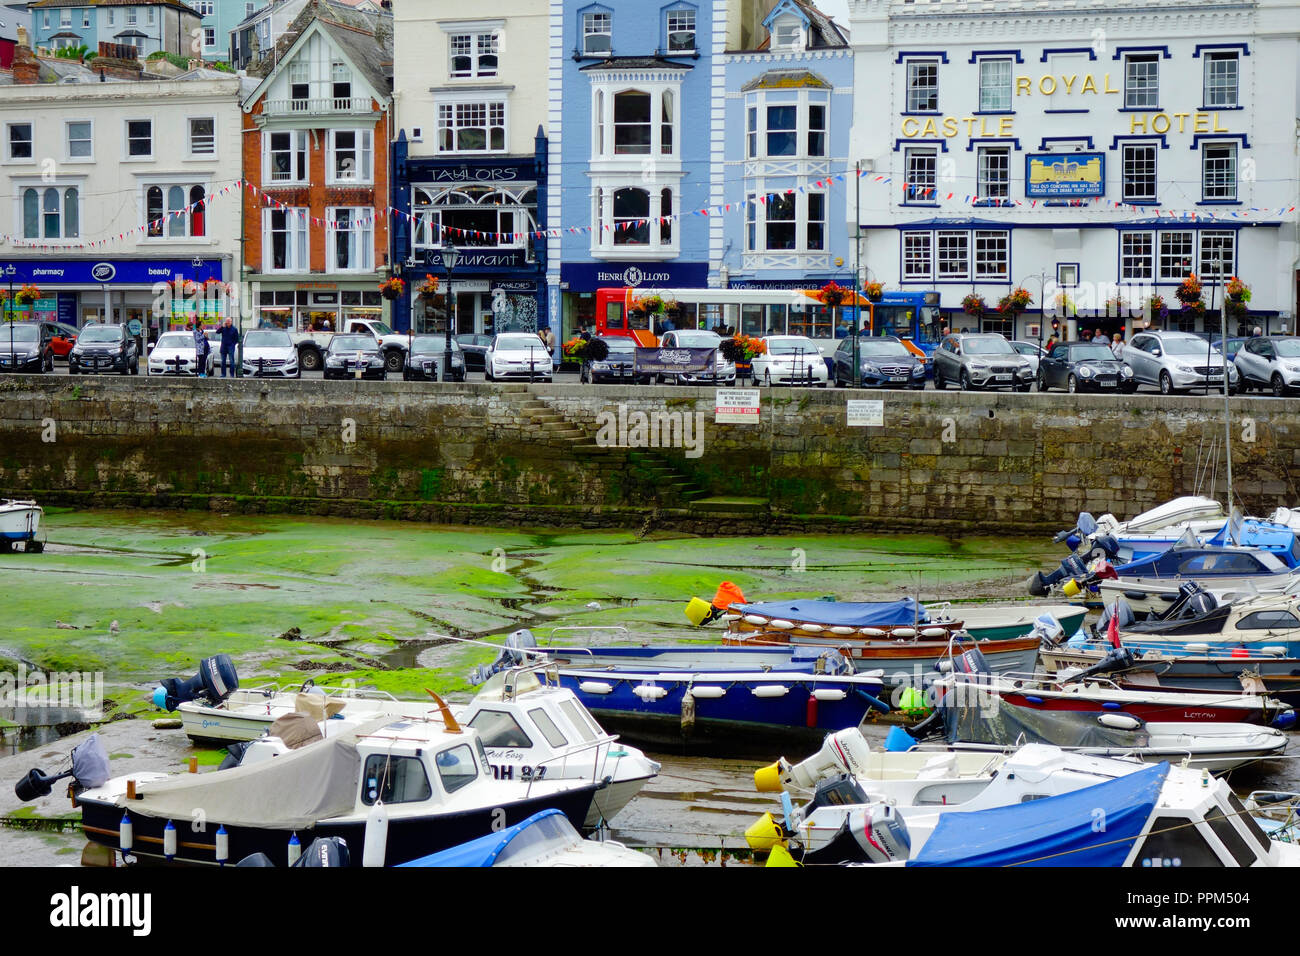 The Inner Harbour 'The Float' at Dartmouth, South Hams, Devon, England - Stock Image